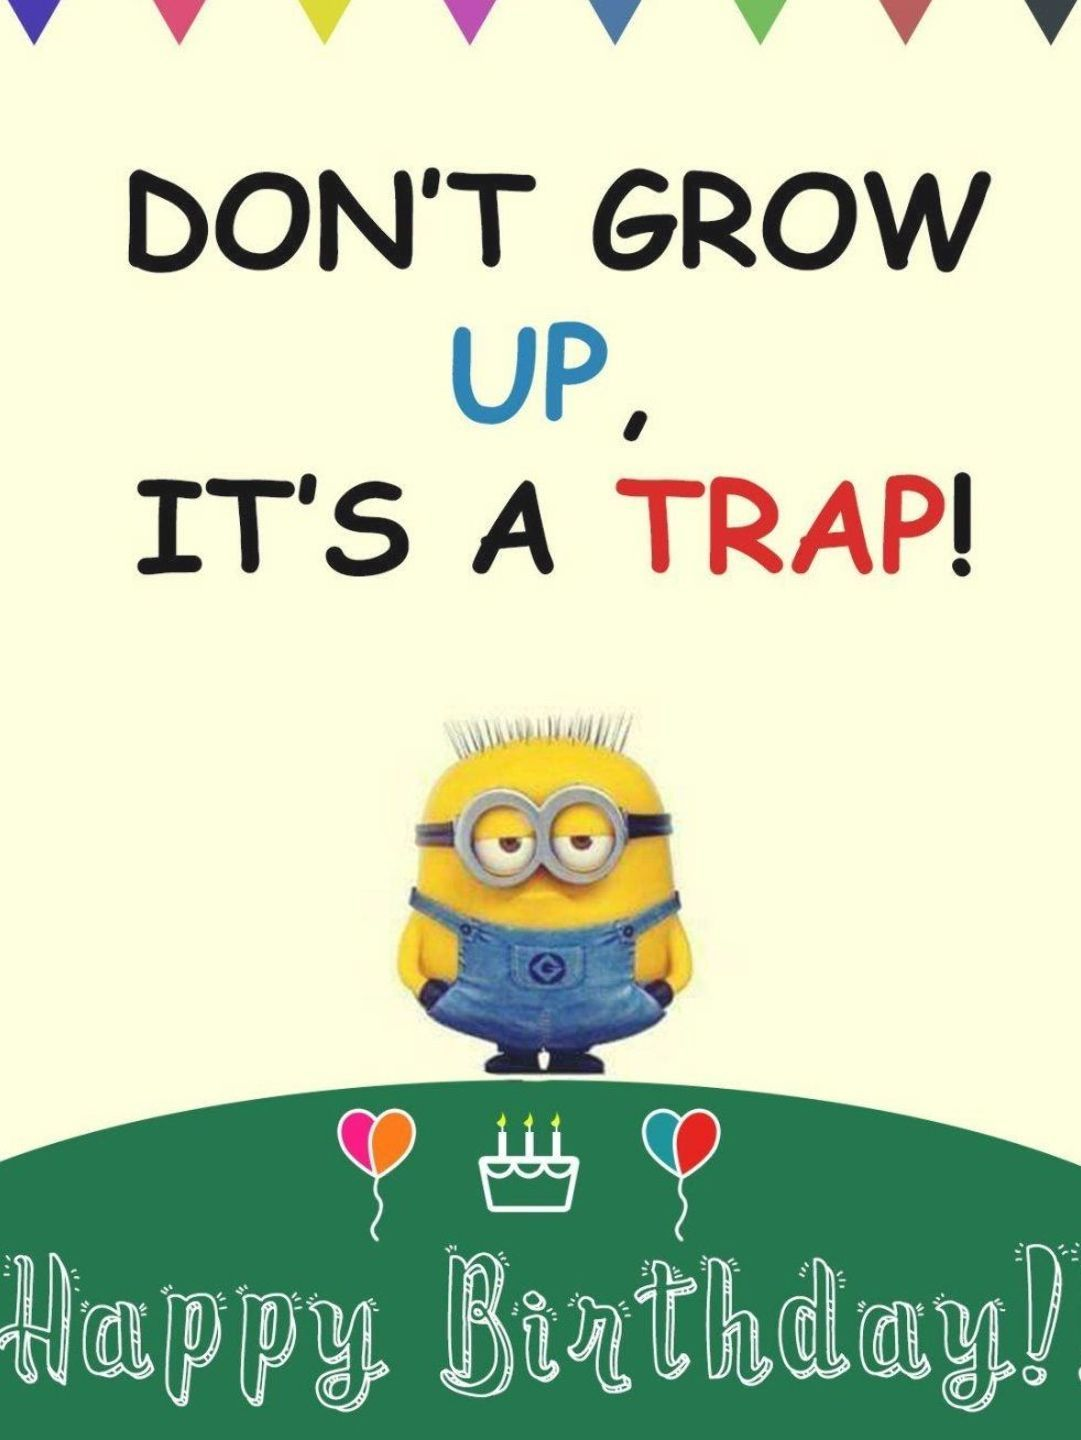 Funny Happy Birthday Wishes For Best Friend Happy Birthday Quotes Happy Birthday Quotes For Friends Funny Happy Birthday Wishes Happy Birthday Wishes Quotes